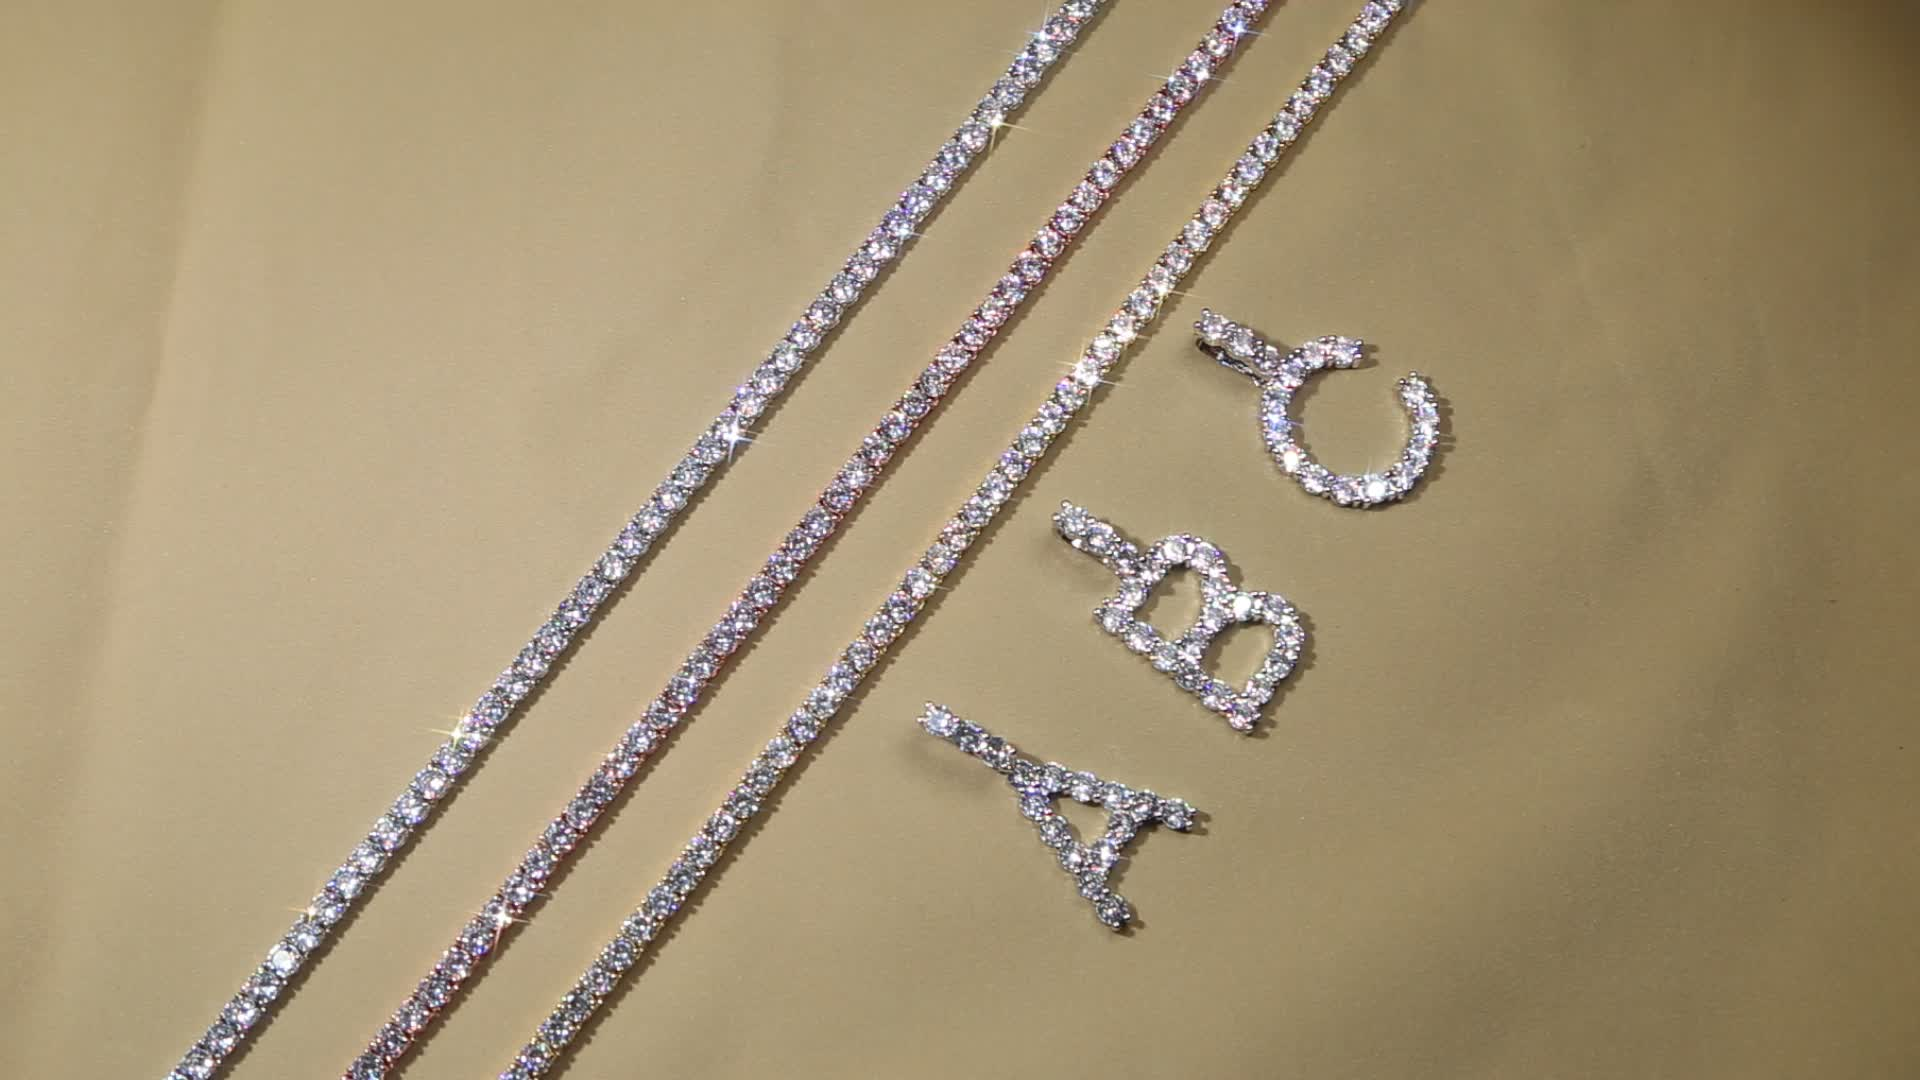 925 sterling silver or brass factory customize 3mm 4mm 5mm 6mm cz tennis chain hip hop tennis necklace for men